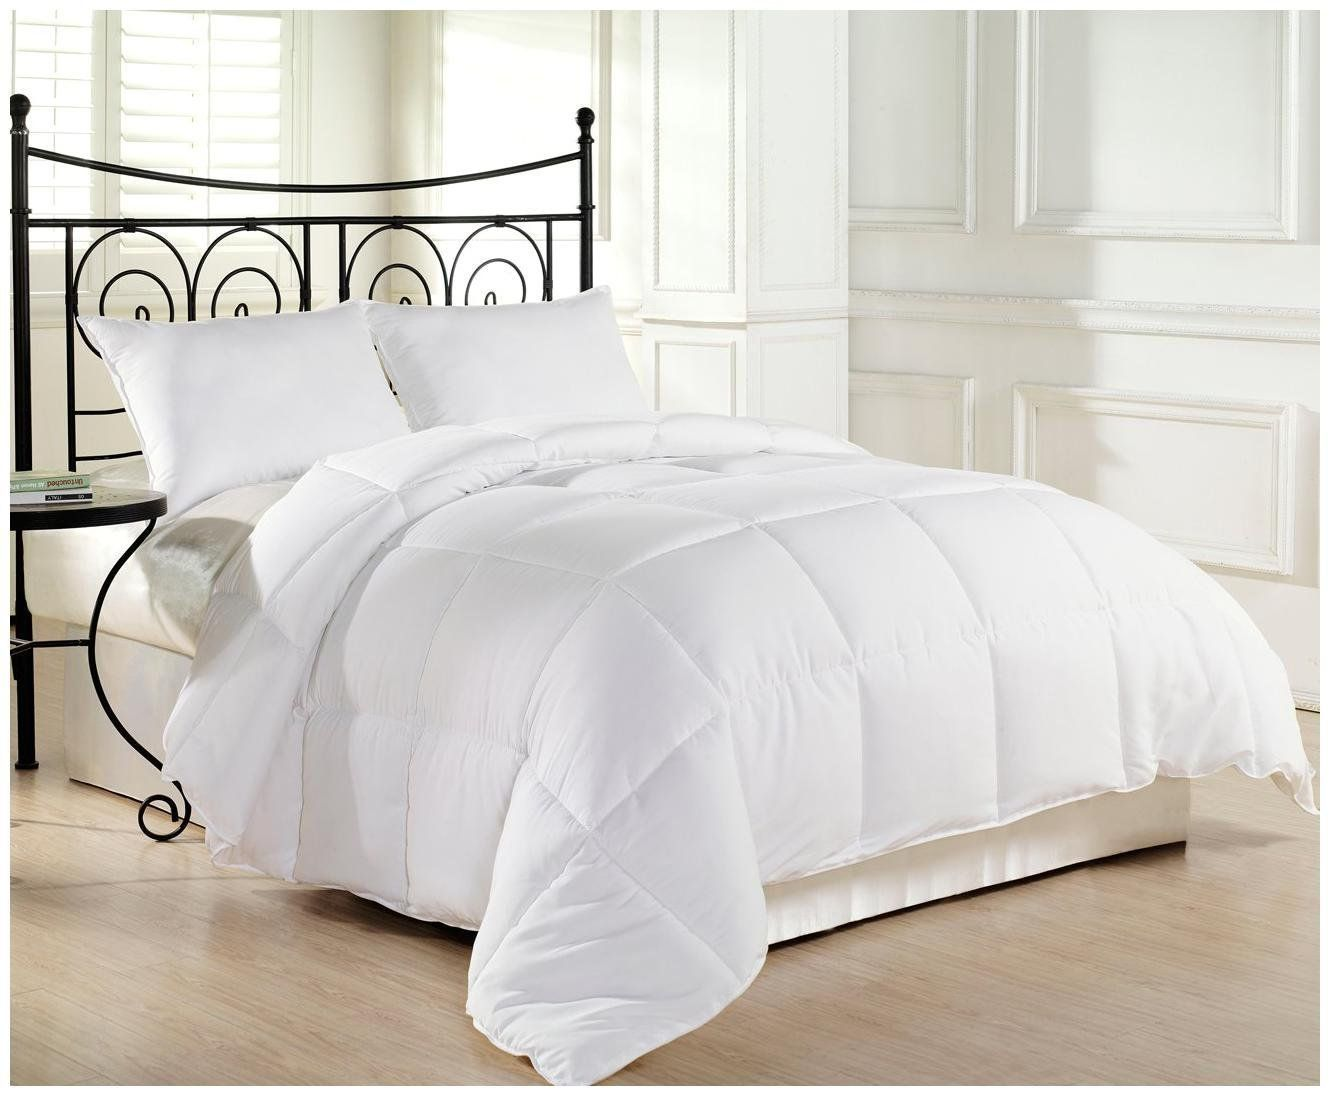 the comforter a clean tips insert guide image bedding ultimate oversized to nc duvet prod down deluxe care blog best washing how pacific deluxeyrround coast